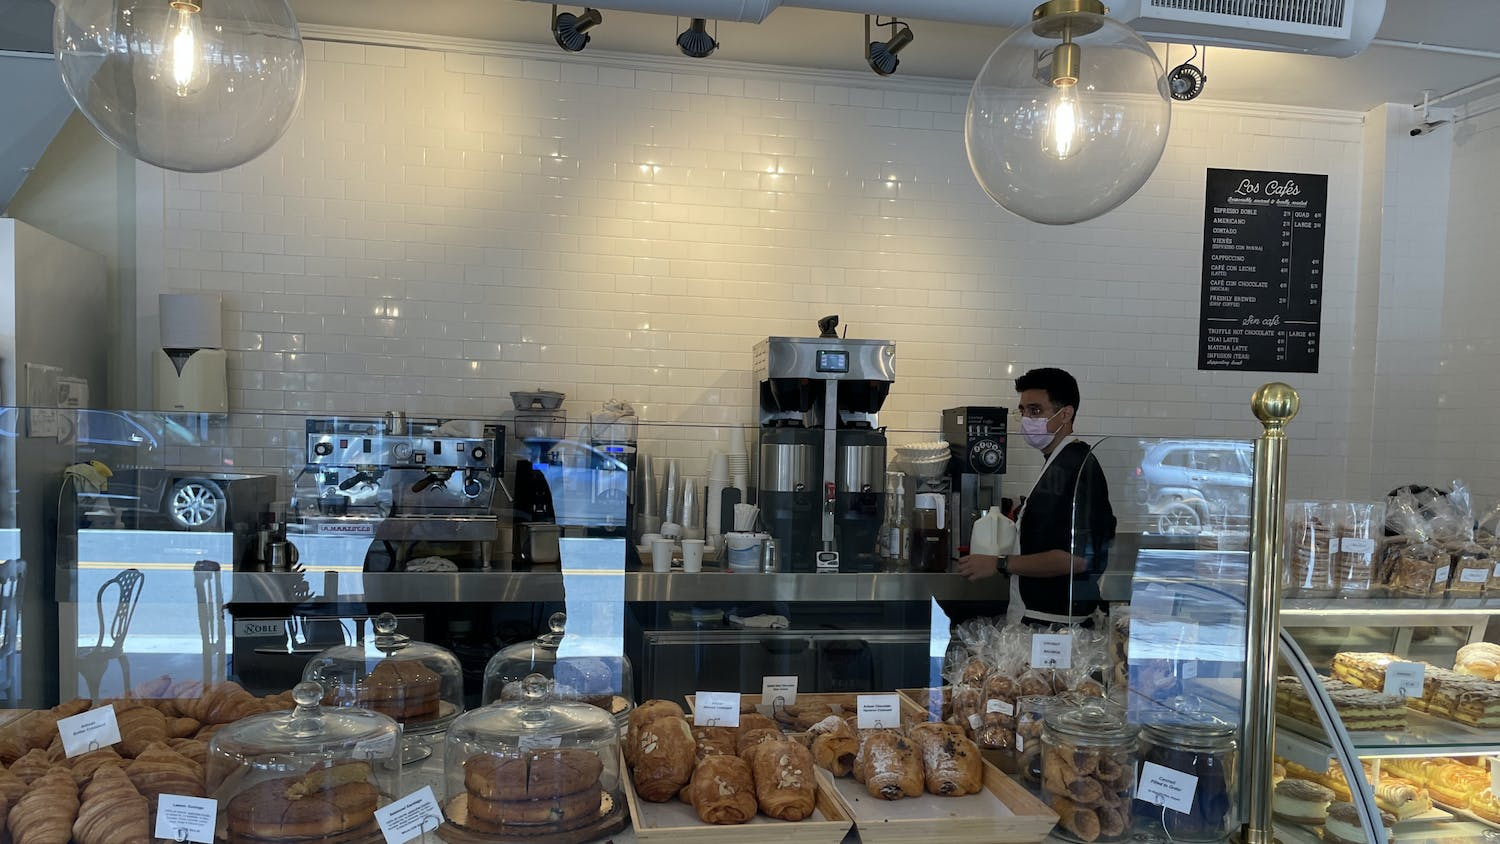 Spanish baker Sergio Mendoza welcomes customers to family-owned Madrid European Bakery and Patisserie.